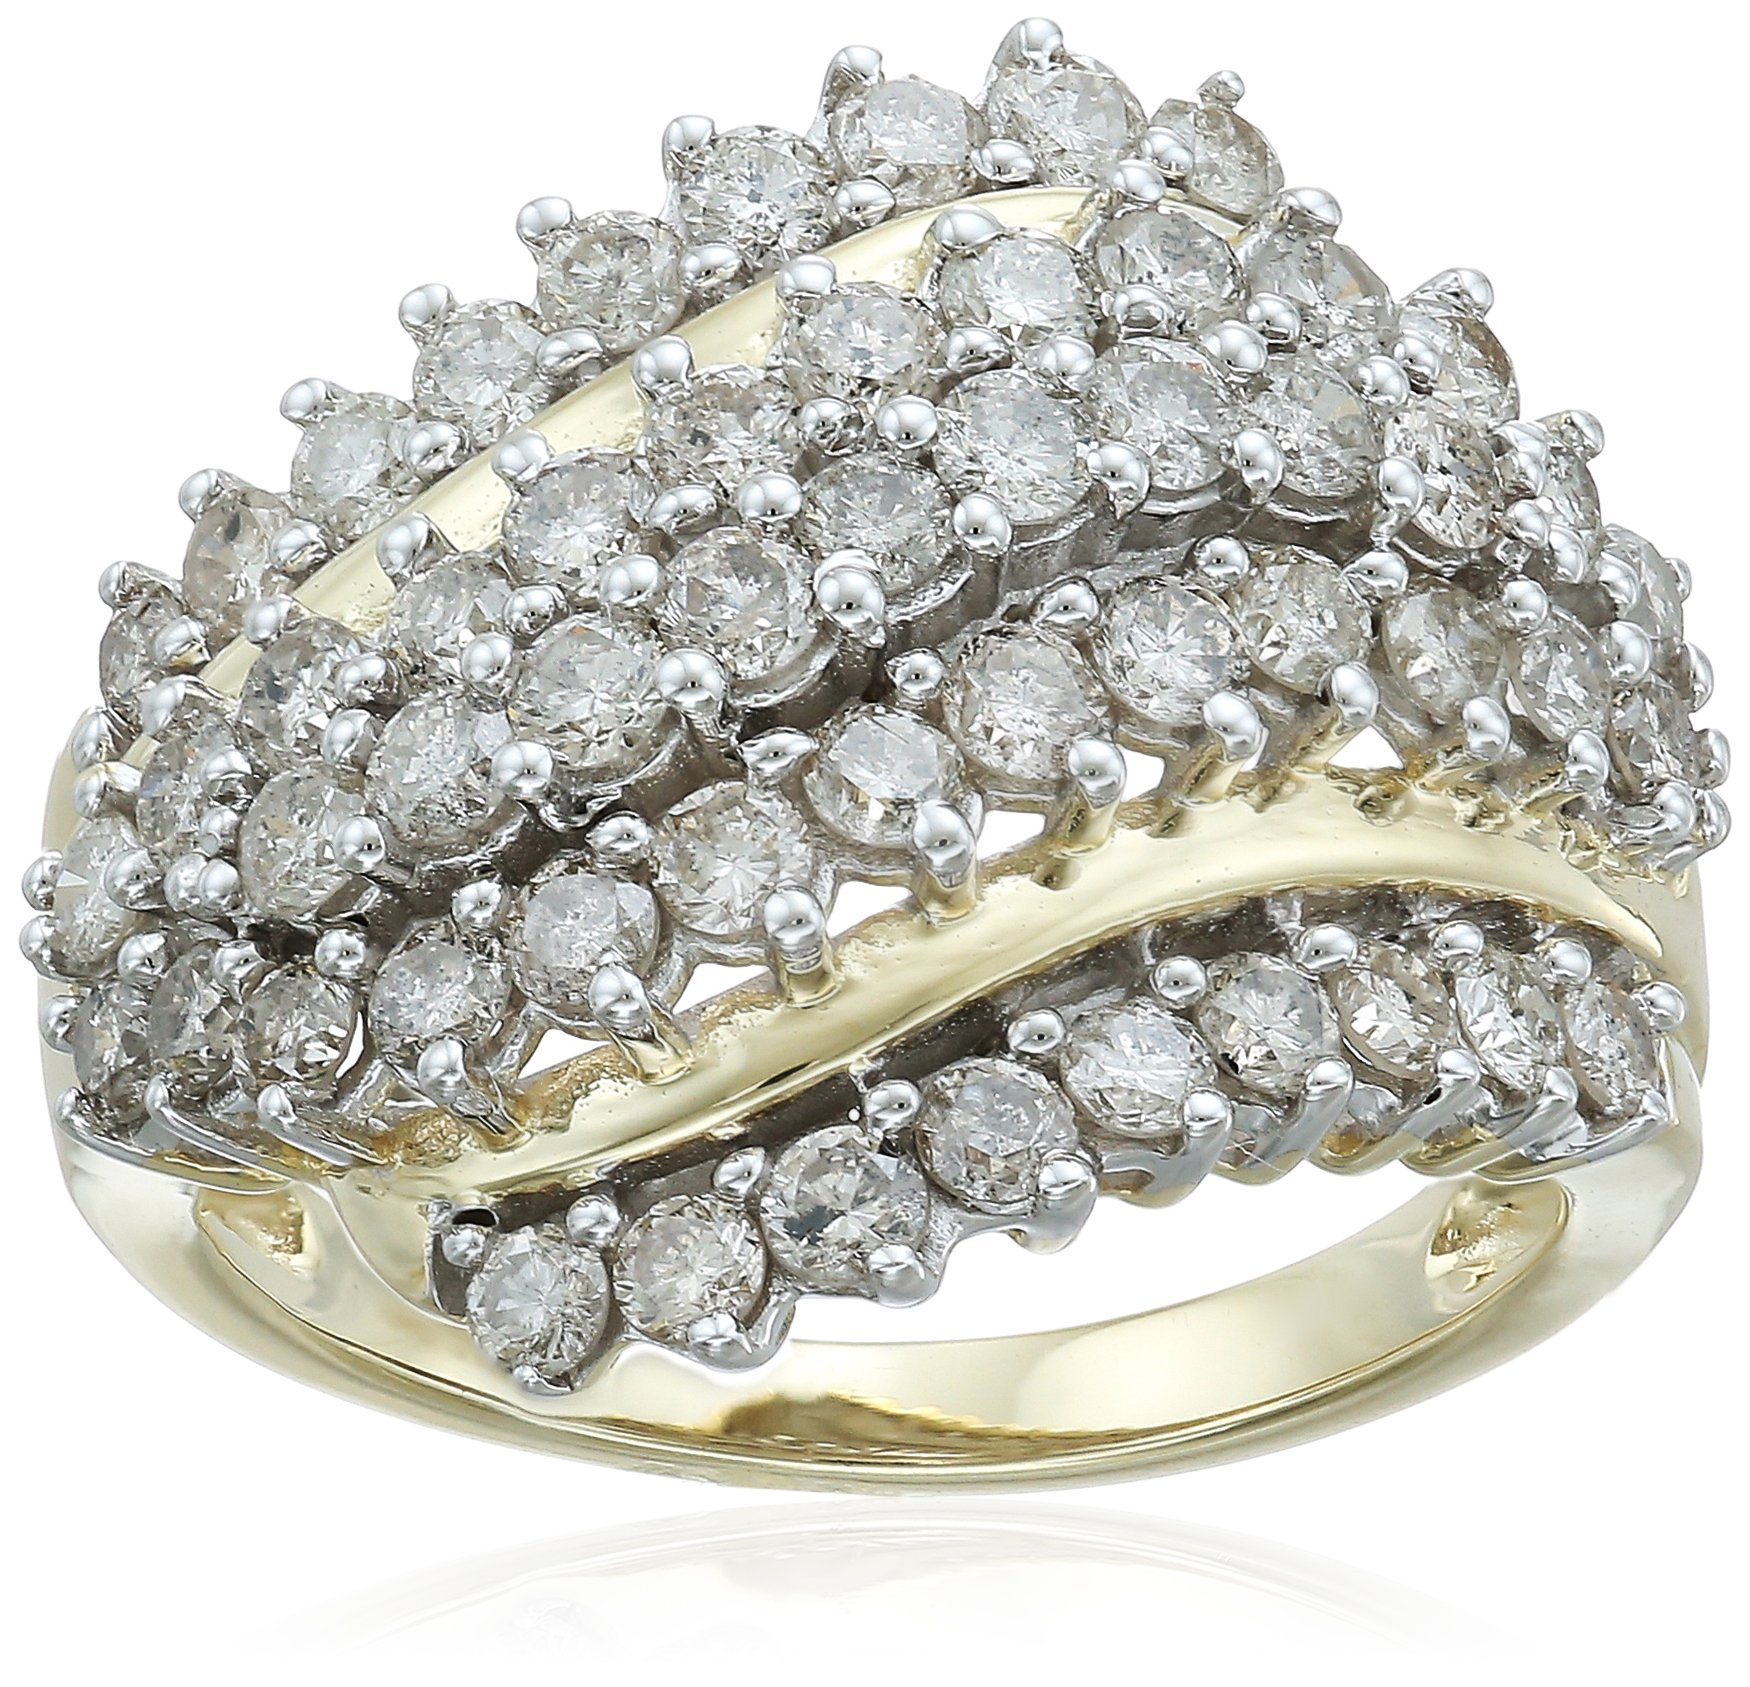 10K Yellow Gold Diamond Cluster Ring (2cttw), Size 7 by Amazon Collection